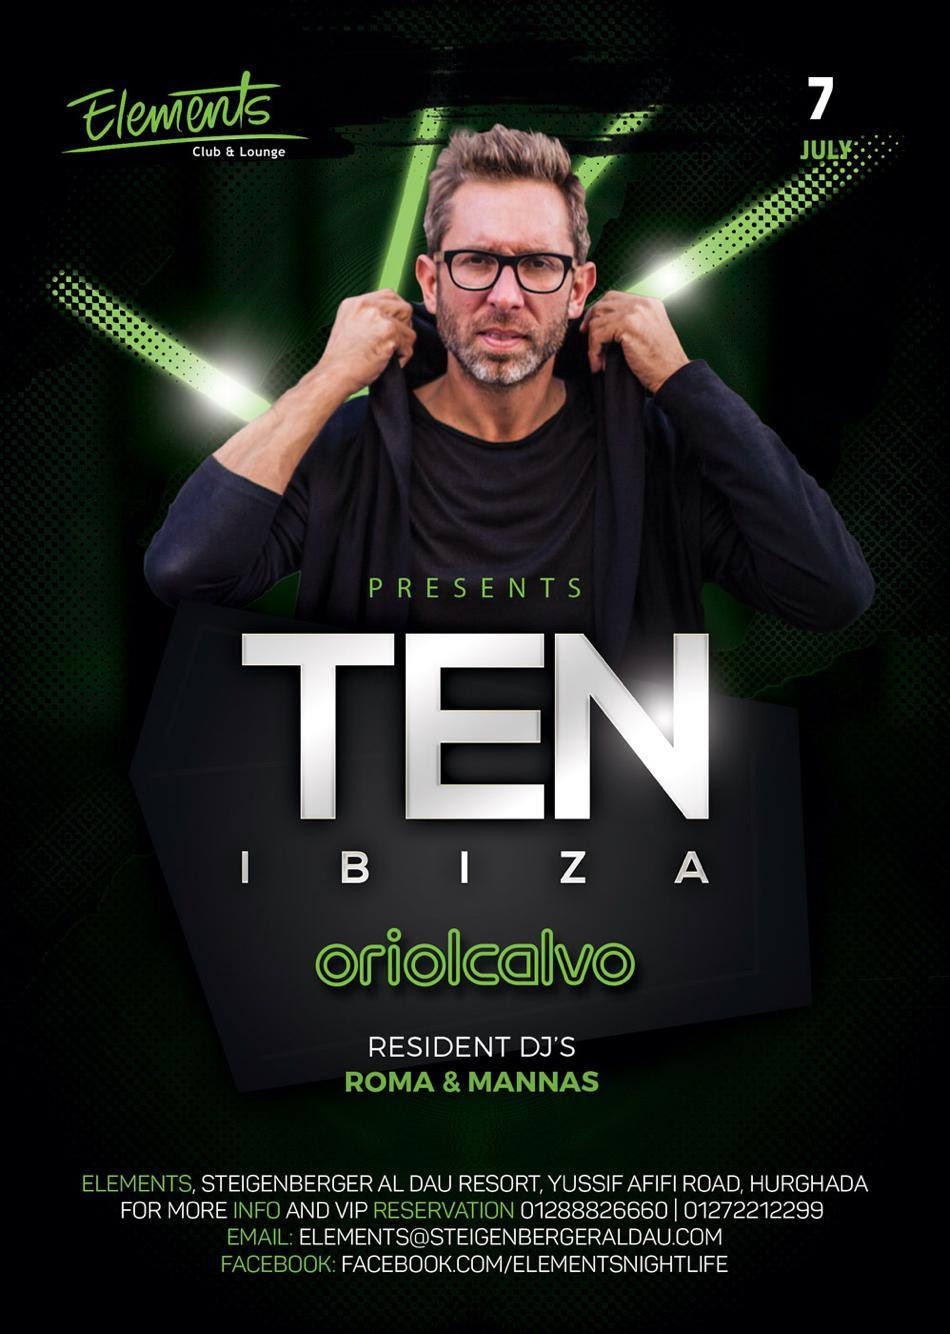 7a4428c7-8d2f-41db-bb99-37a83cc47873 Programación YOU en TEN Ibiza para julio